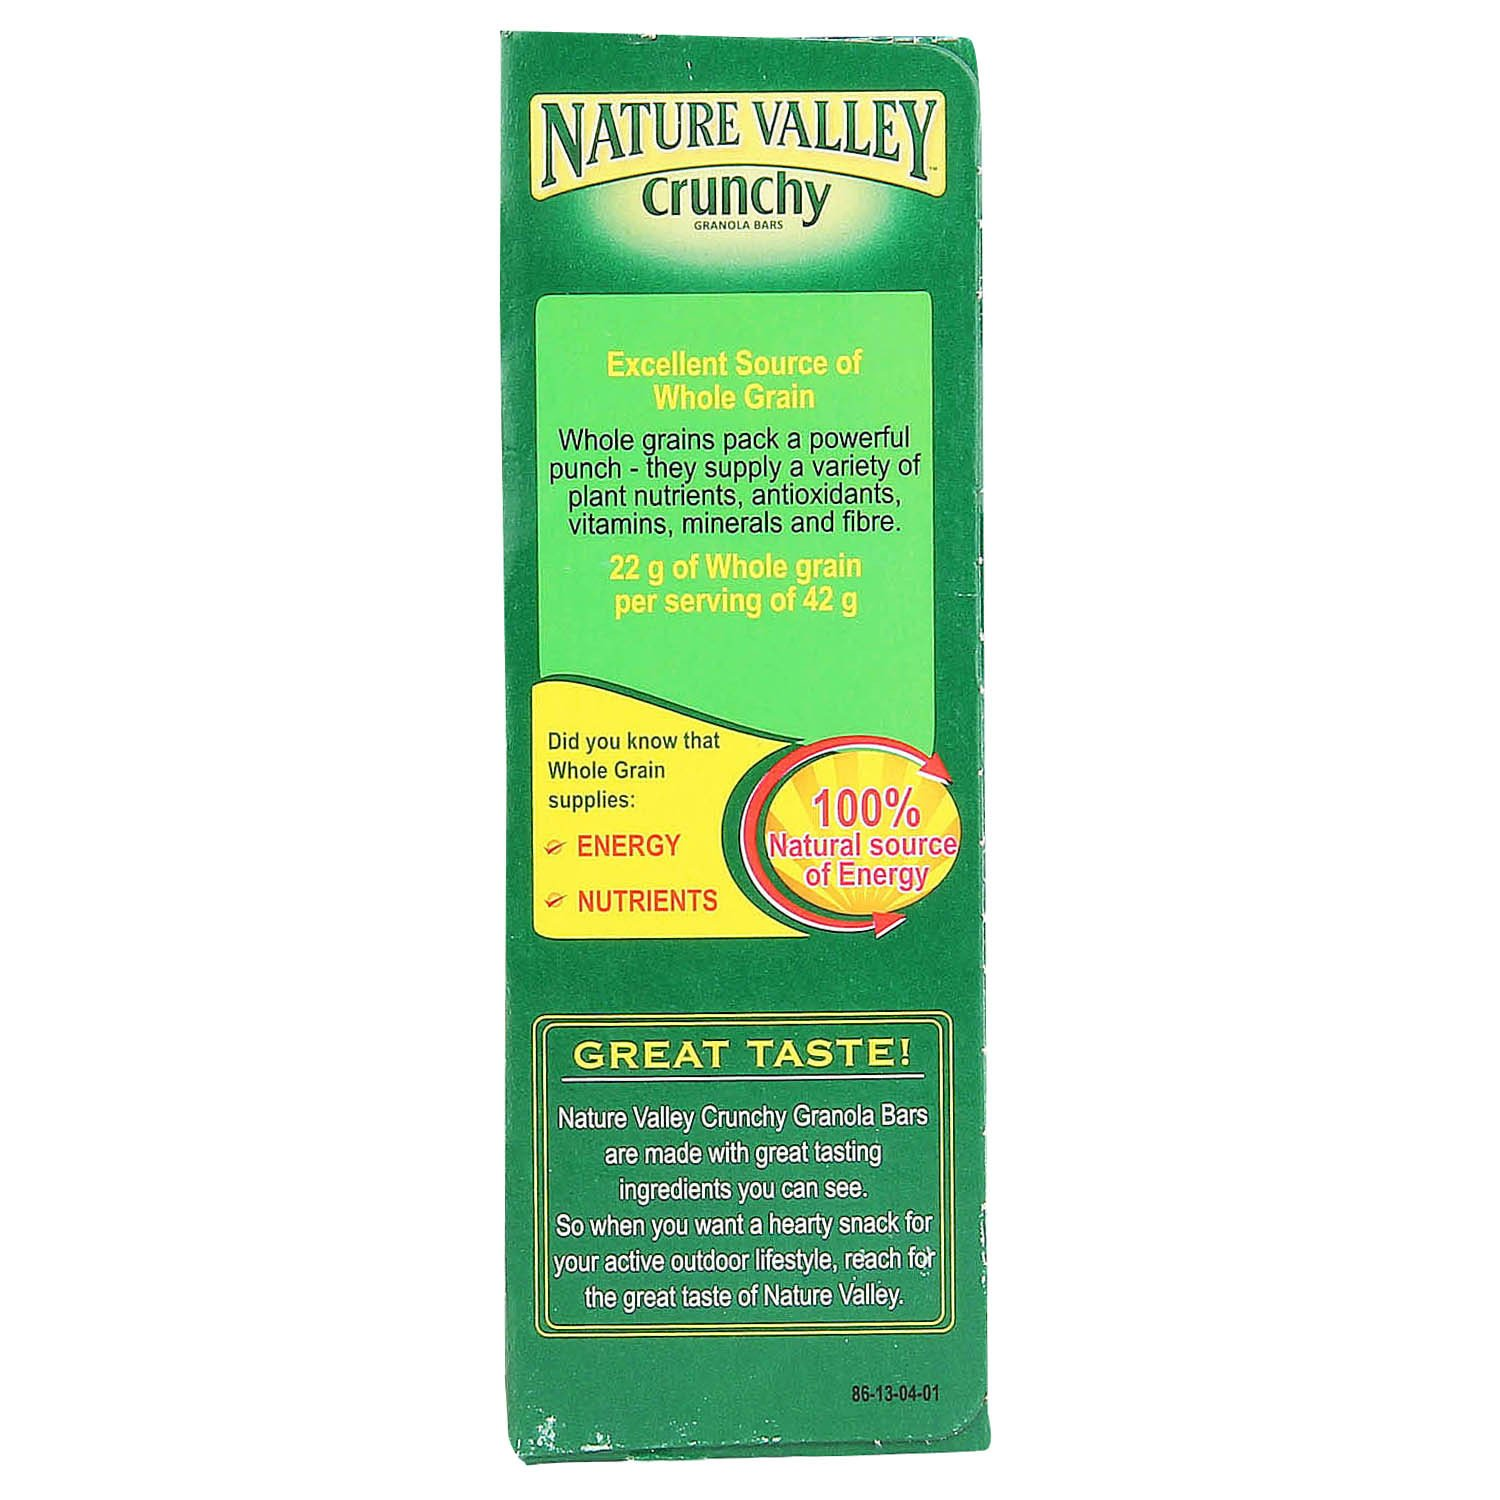 Nature Valley Crunchy Granola Bars Good For You